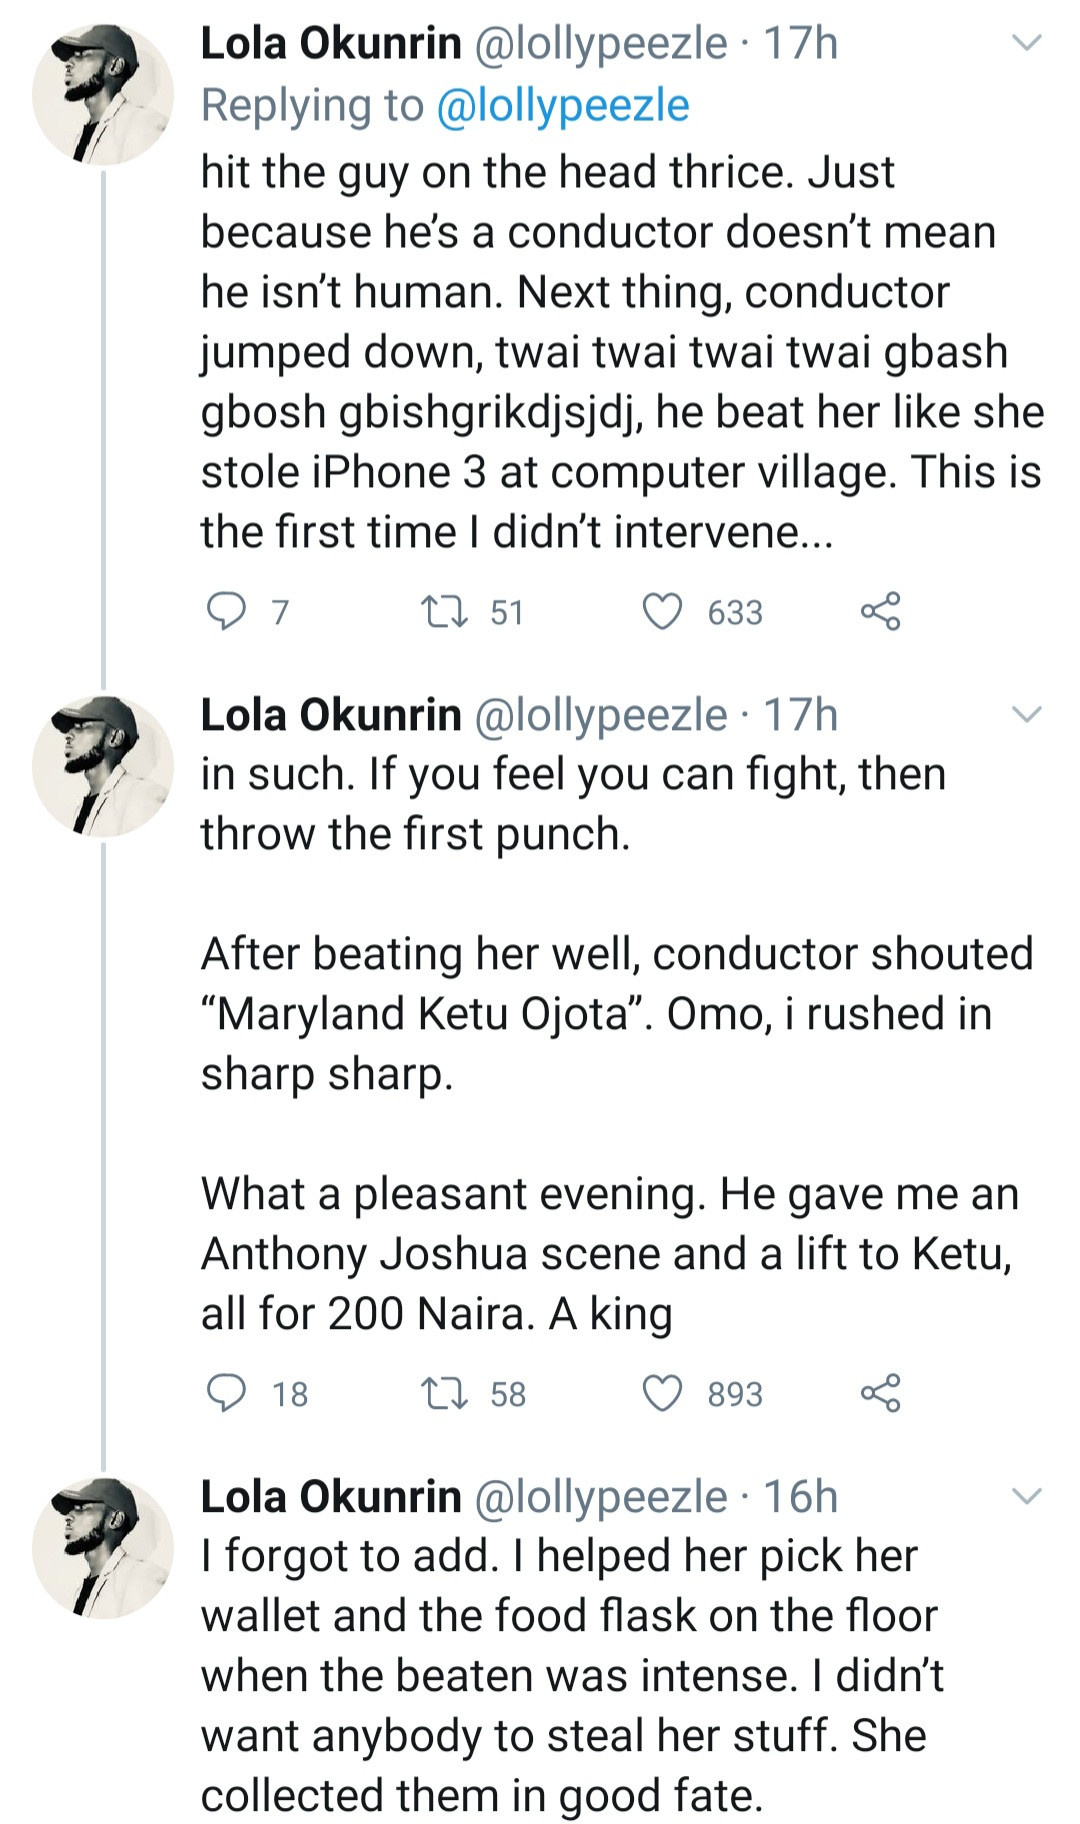 Twitter Stories: Passersby allegedly stand by and do nothing as conductor beats up a female passenger who threw the first punch